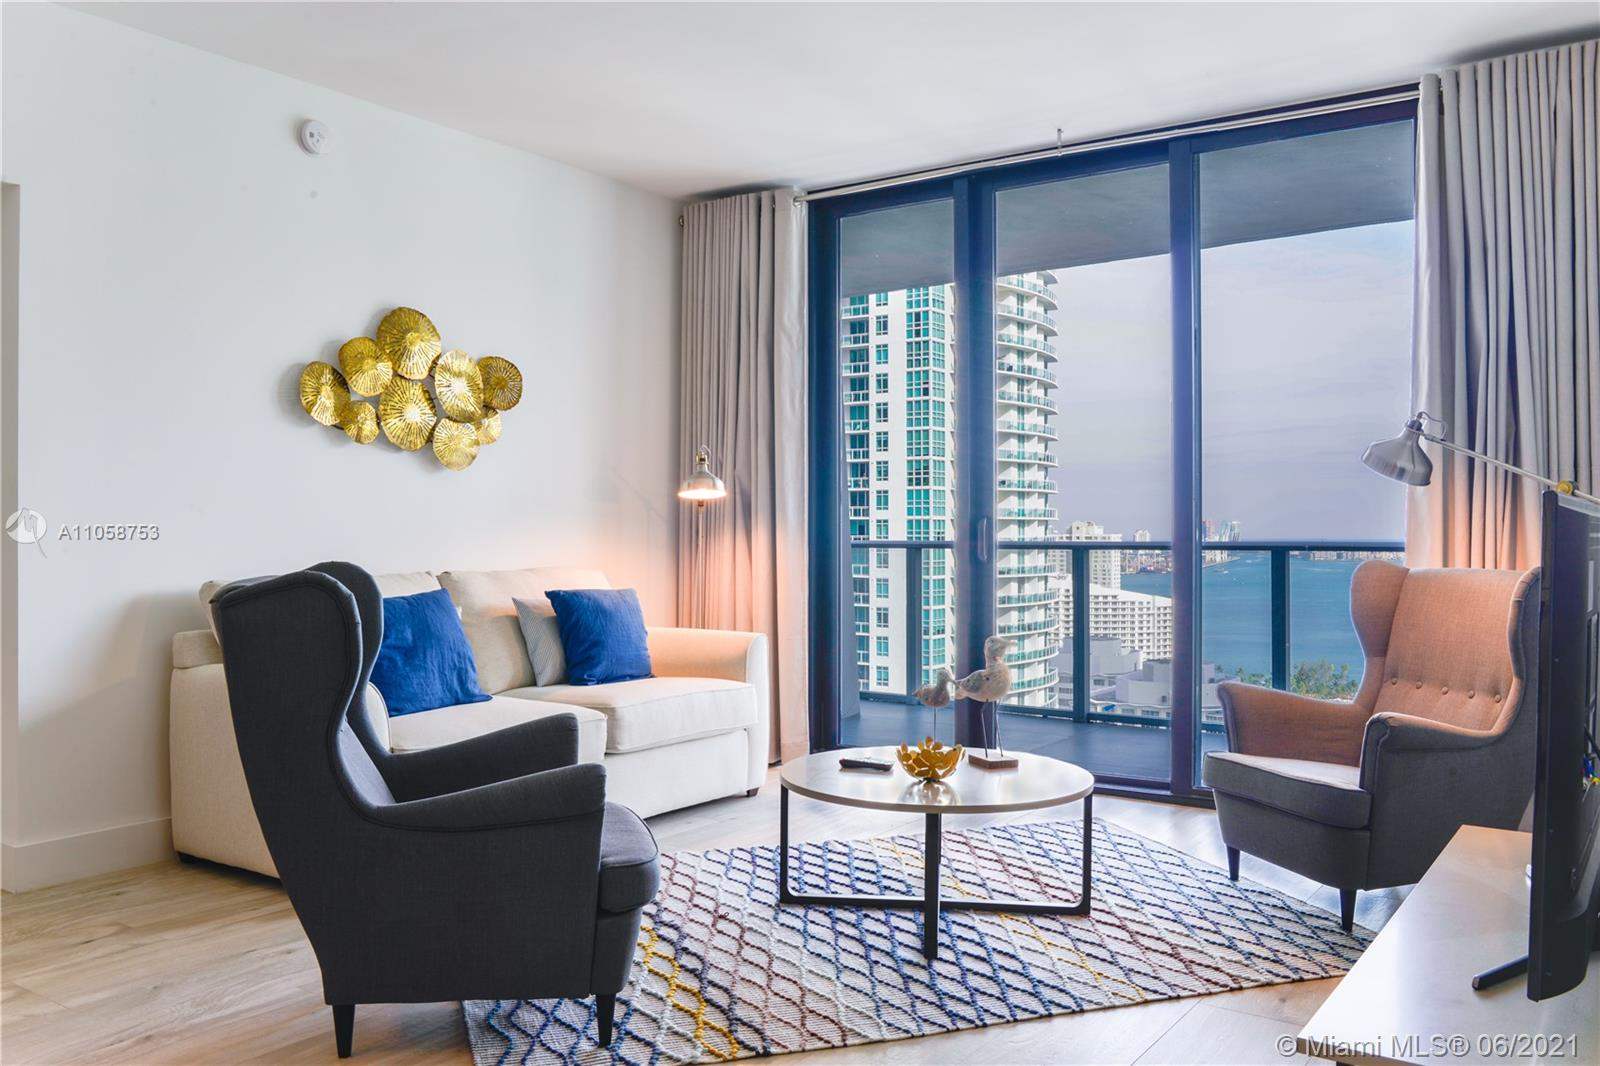 Spectacular upgraded unit at the iconic 1010 Brickell Condo. Professionally furnished apartment, 2 beds, 3 baths, plus Den, private elevator, high ceilings, huge balcony with stunning views, top of the line Smeg appliances! Building offers: outdoor movie theatre, restaurant & swimming pool @ 50th floor roof top; Co-ed Hammam spa w cold & hot Jacuzzi, massage & treatments rooms, sauna & steam room; basketball & racquetball courts, running track, indoor heated swimming pool, fitness center, party room w kitchen, open terrace & barbeque, kids room w bowling, virtual golf, among others. Excellent location next to public transportation, Brickell City Centre, & more.